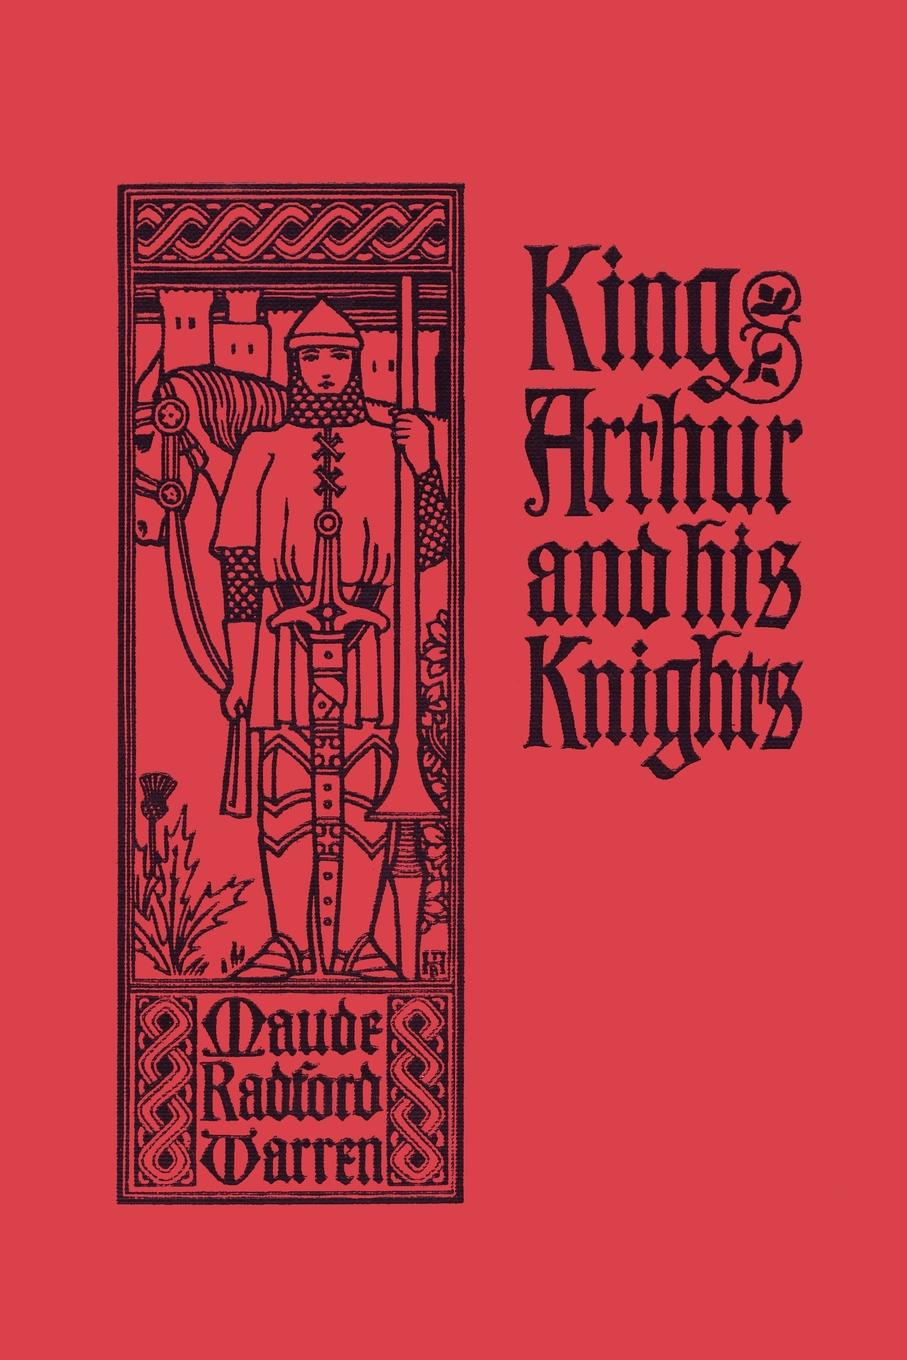 Maude Radford Warren King Arthur and His Knights j knowles the legends of king arthur and his knights